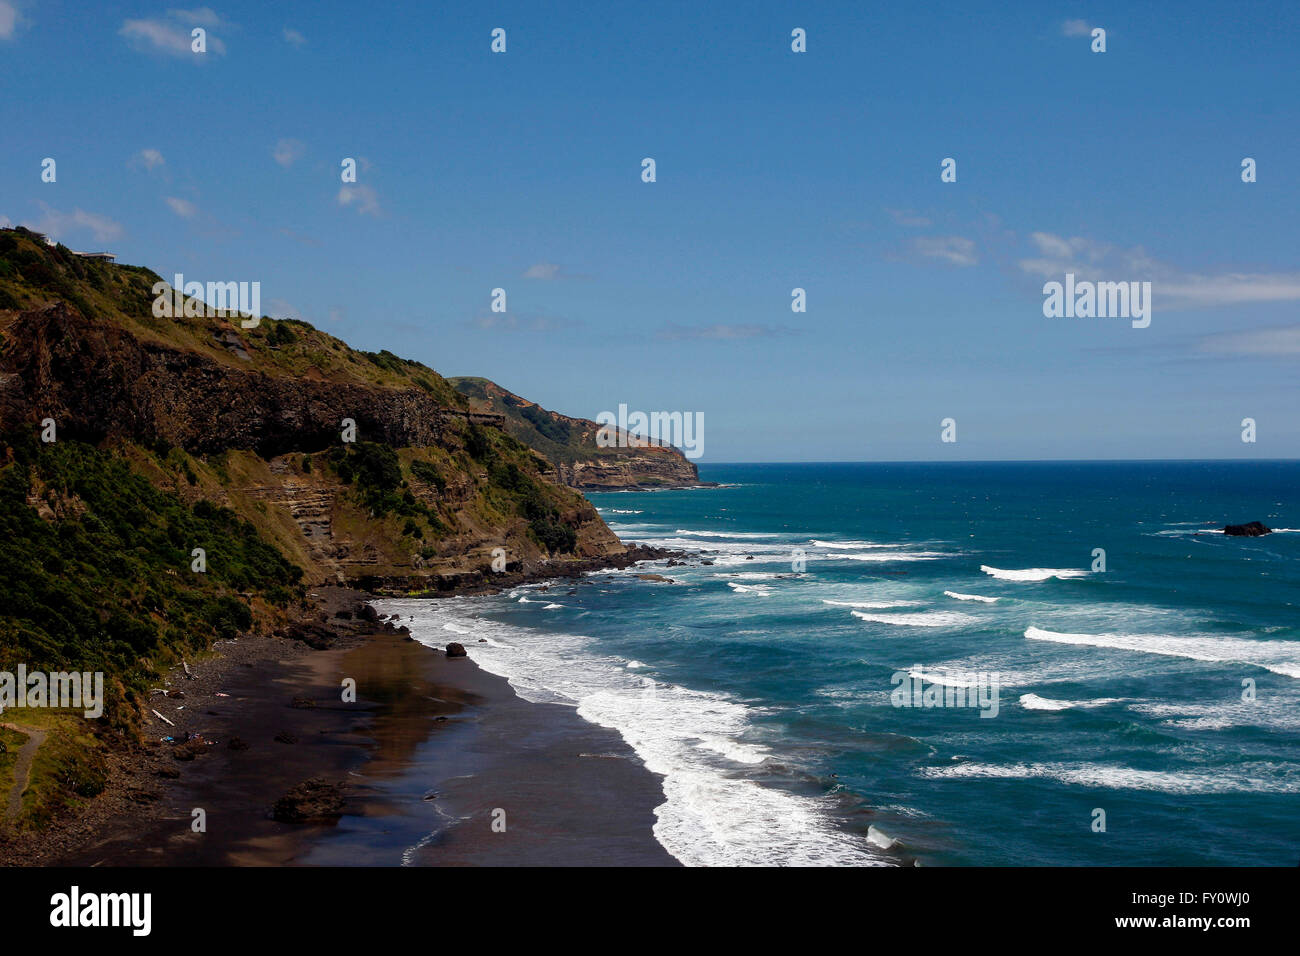 An overall view of Muriwai Beach near Auckland, New Zealand - Stock Image